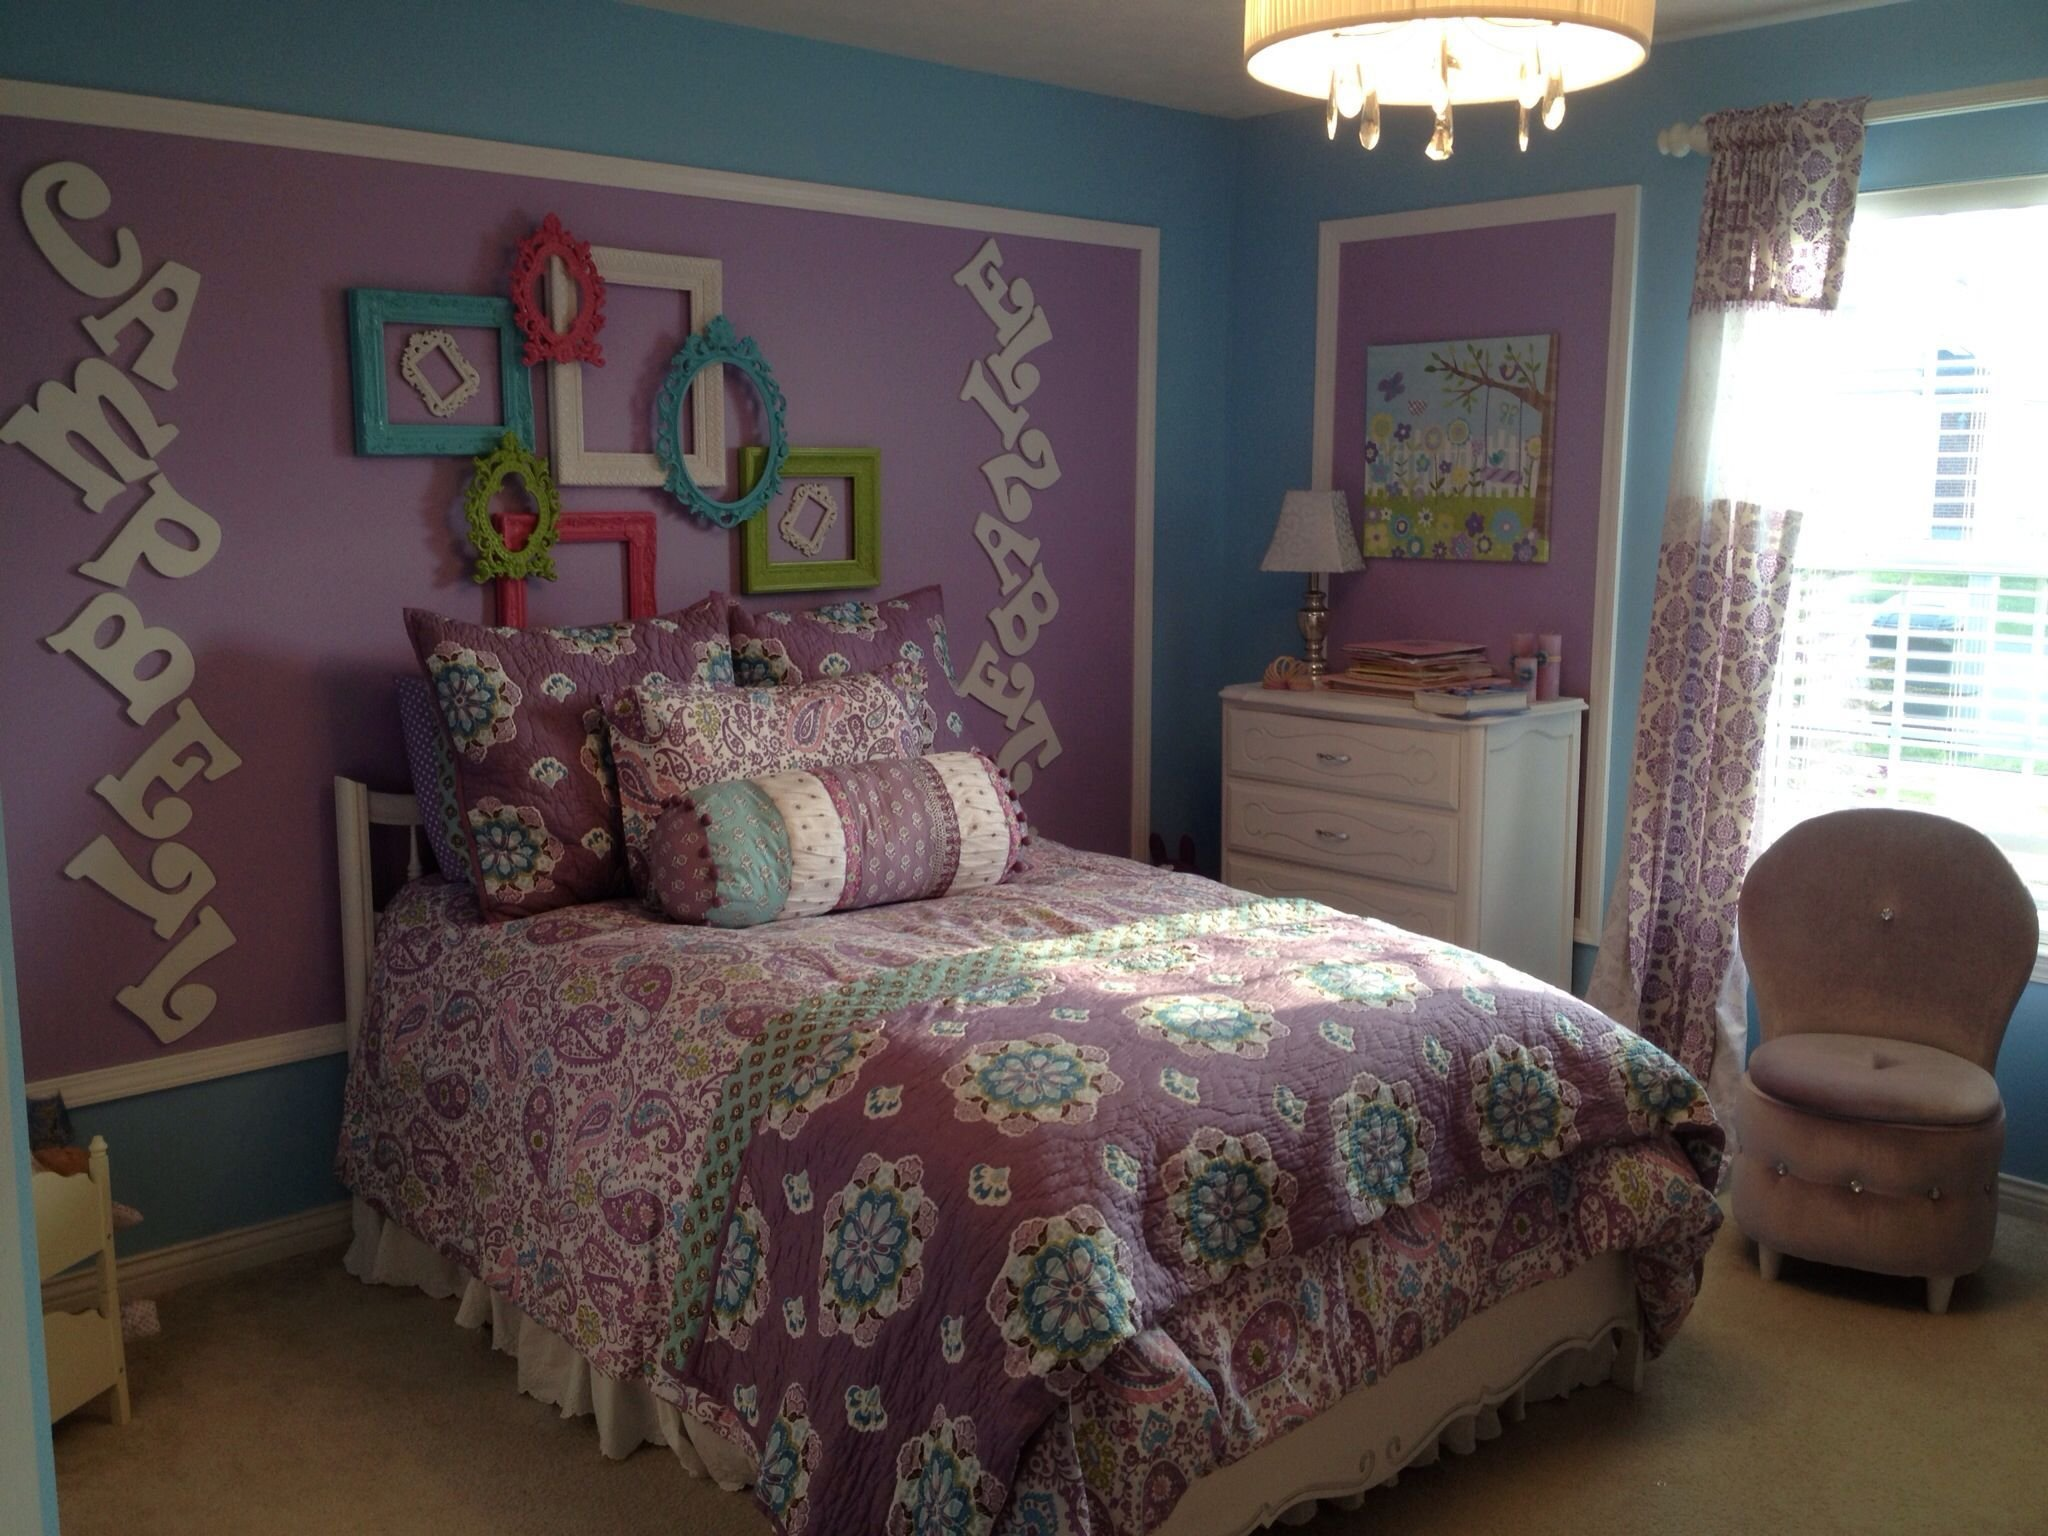 Best Pottery Barn Kids Bedding In 4 Year Old Girls Room So Fun For The Home Little Girl With Pictures